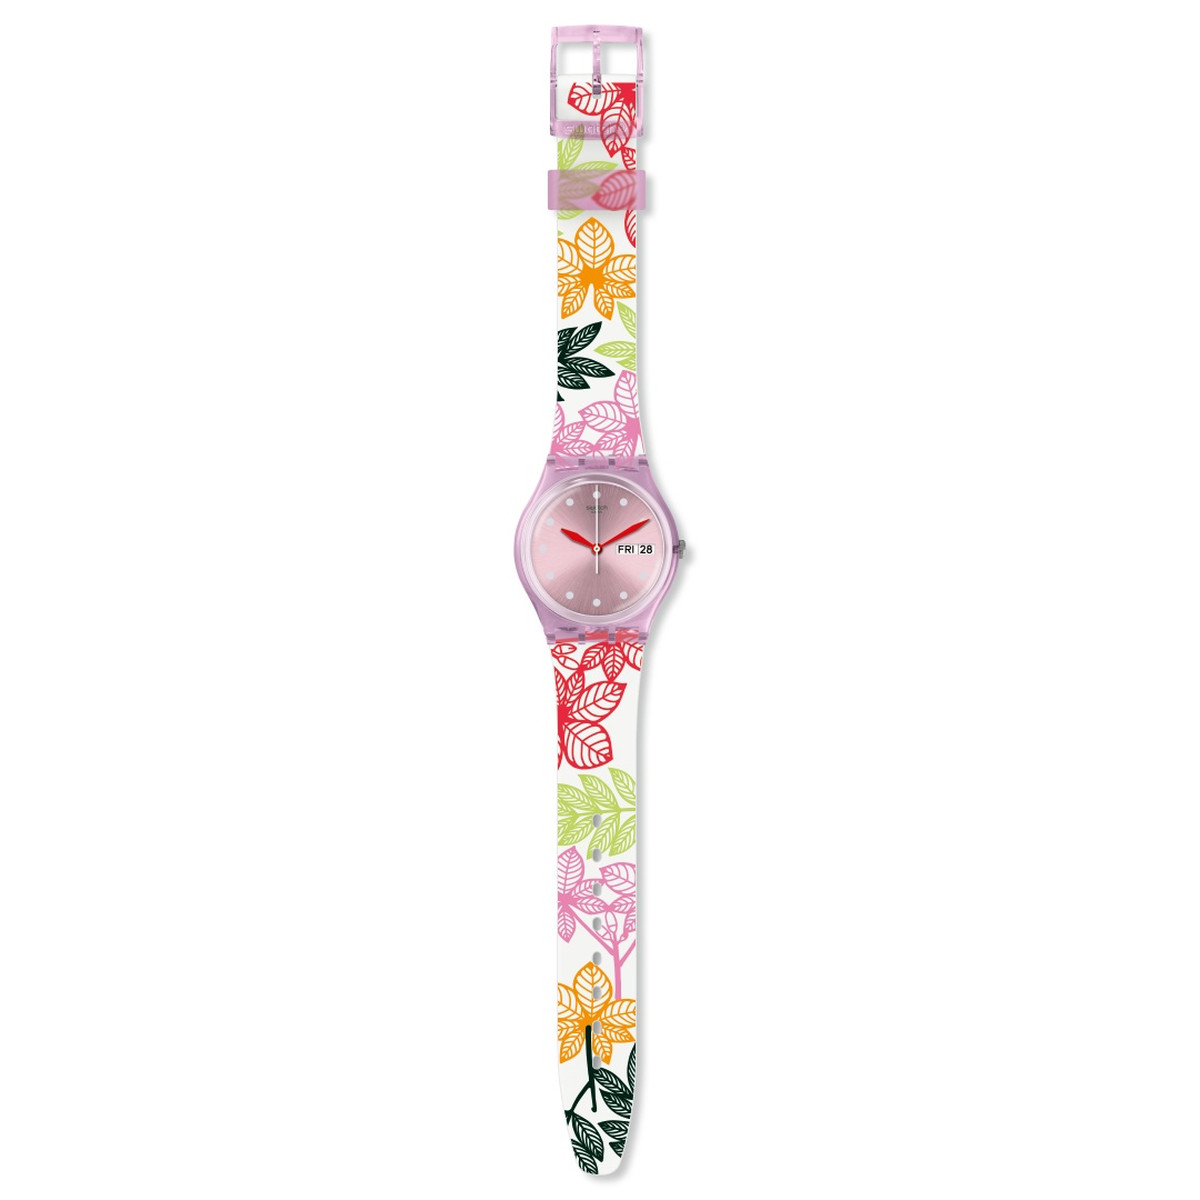 Montre Swatch transformation femme silicone - vue VD1